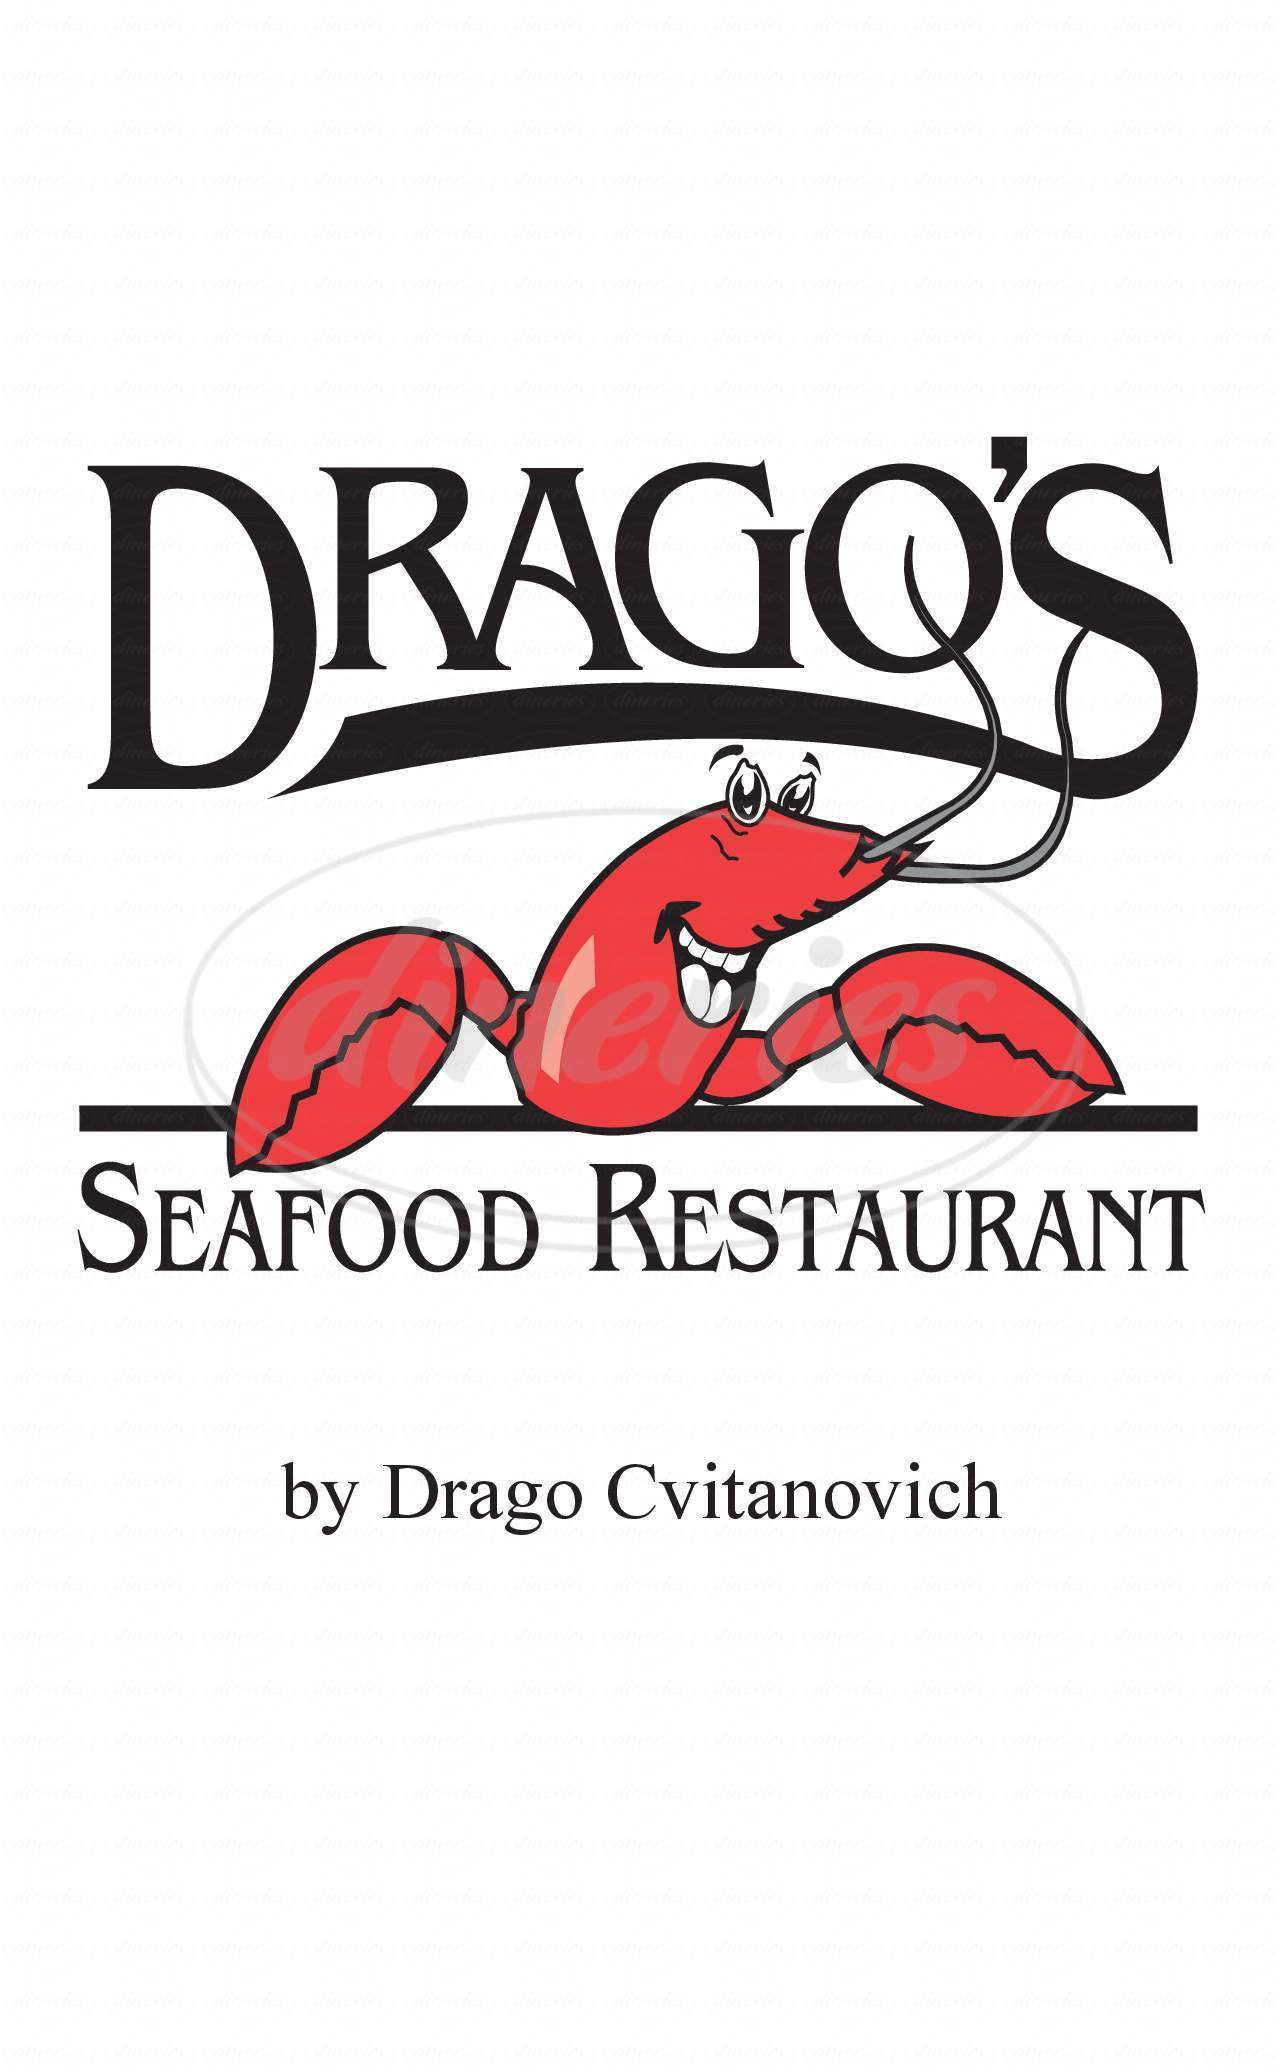 menu for Drago's Seafood Restaurant